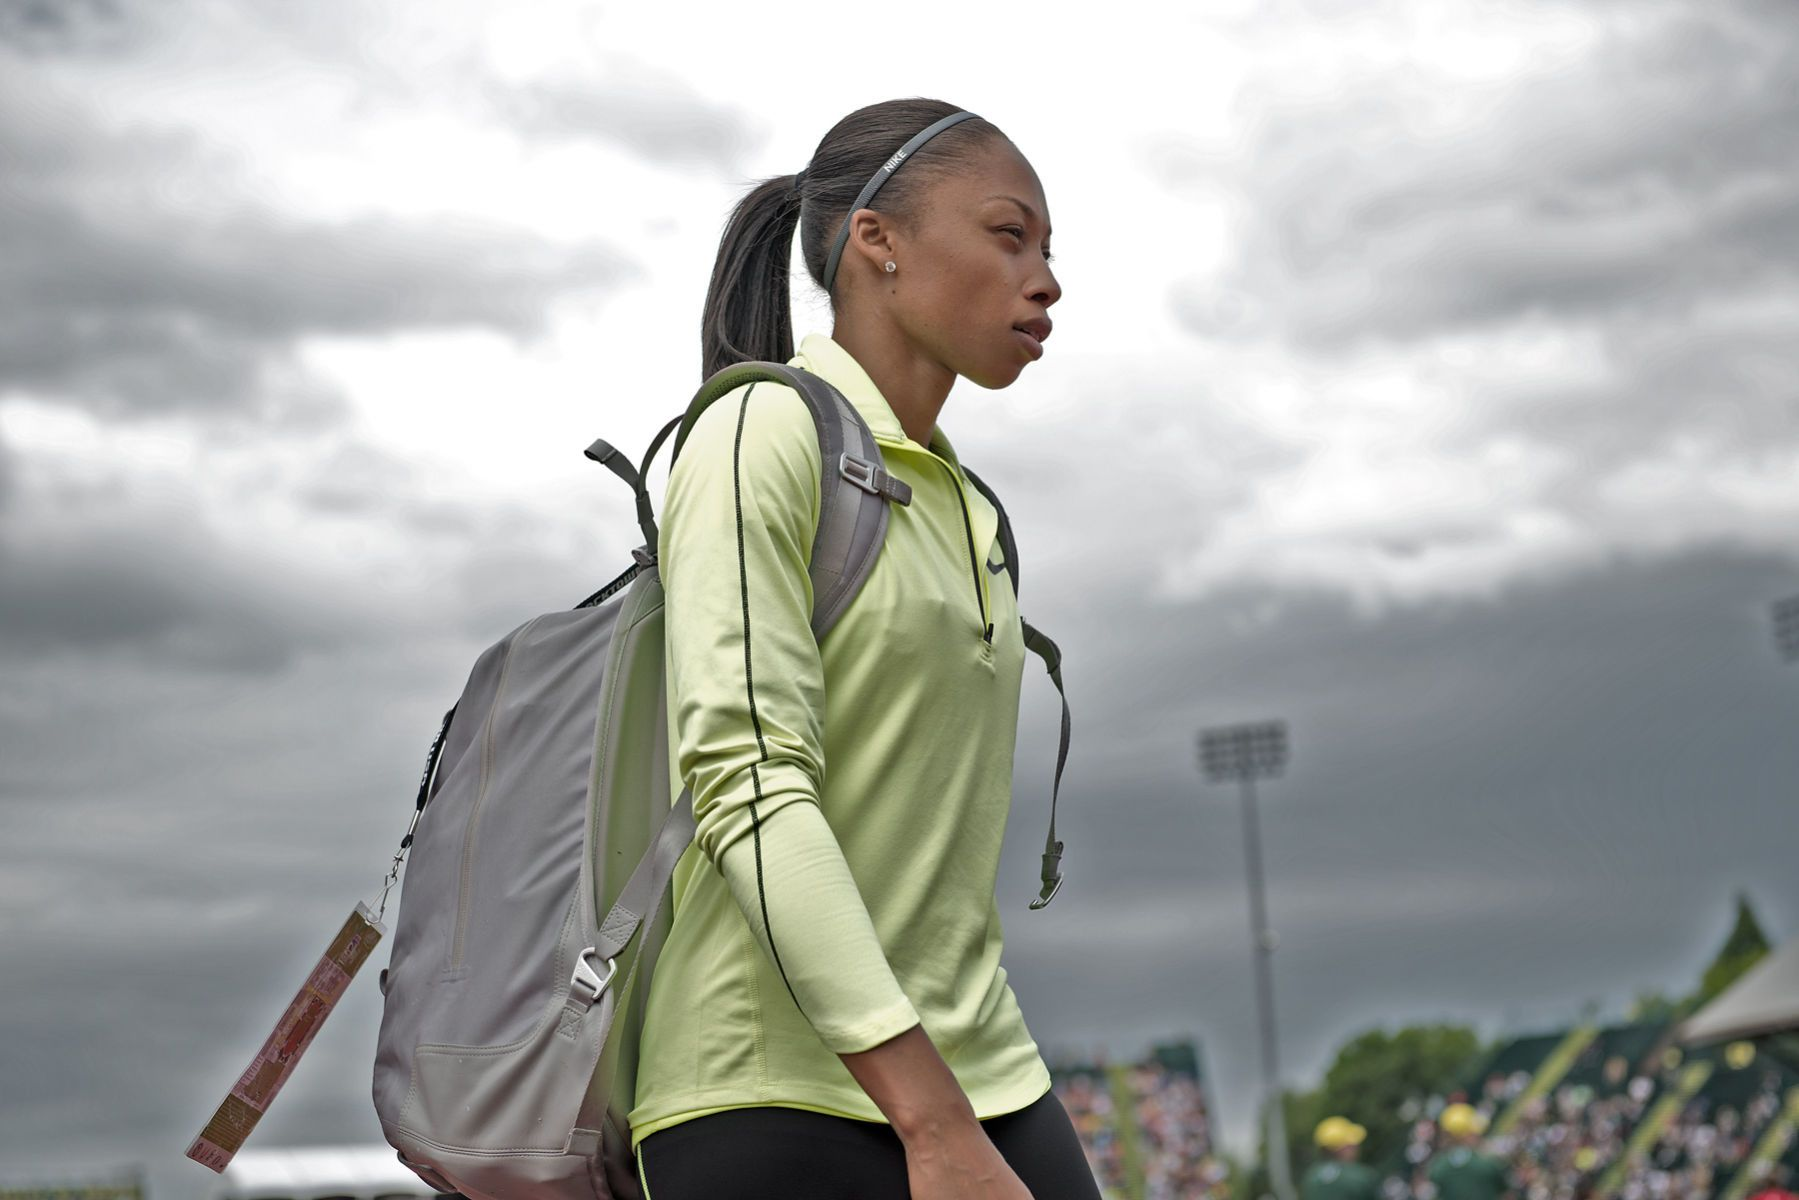 1ustrials2012_allyson_felix_track_and_field_image_jeff_cohen_photography_lb.jpg